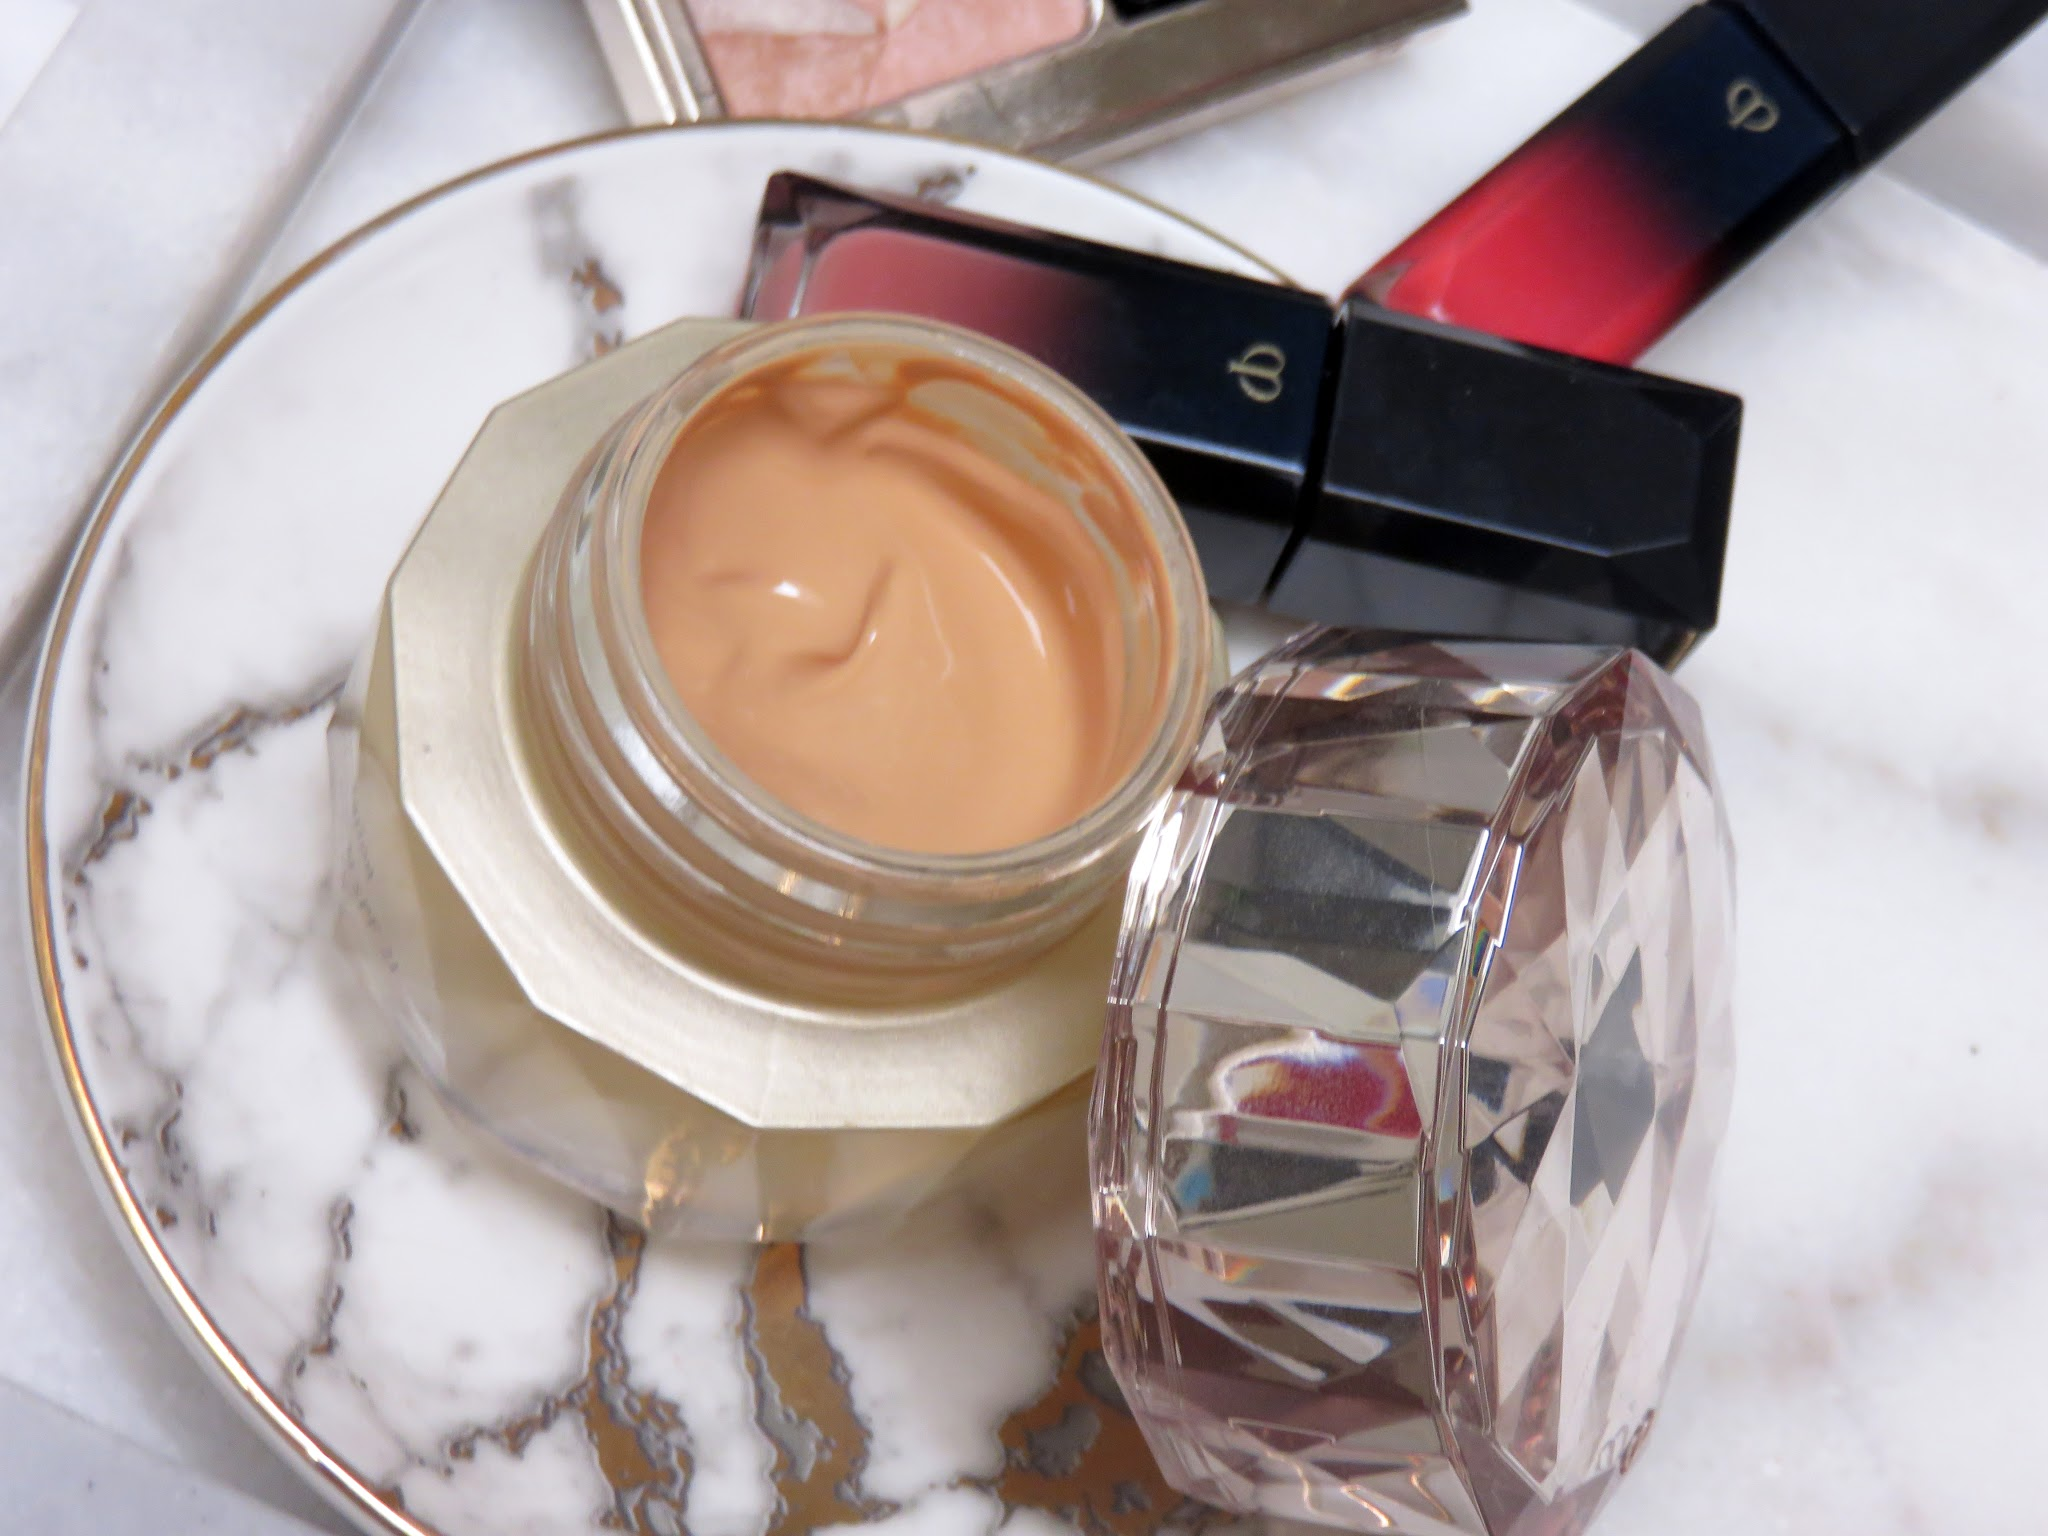 Cle de Peau The Foundation Review and Swatches